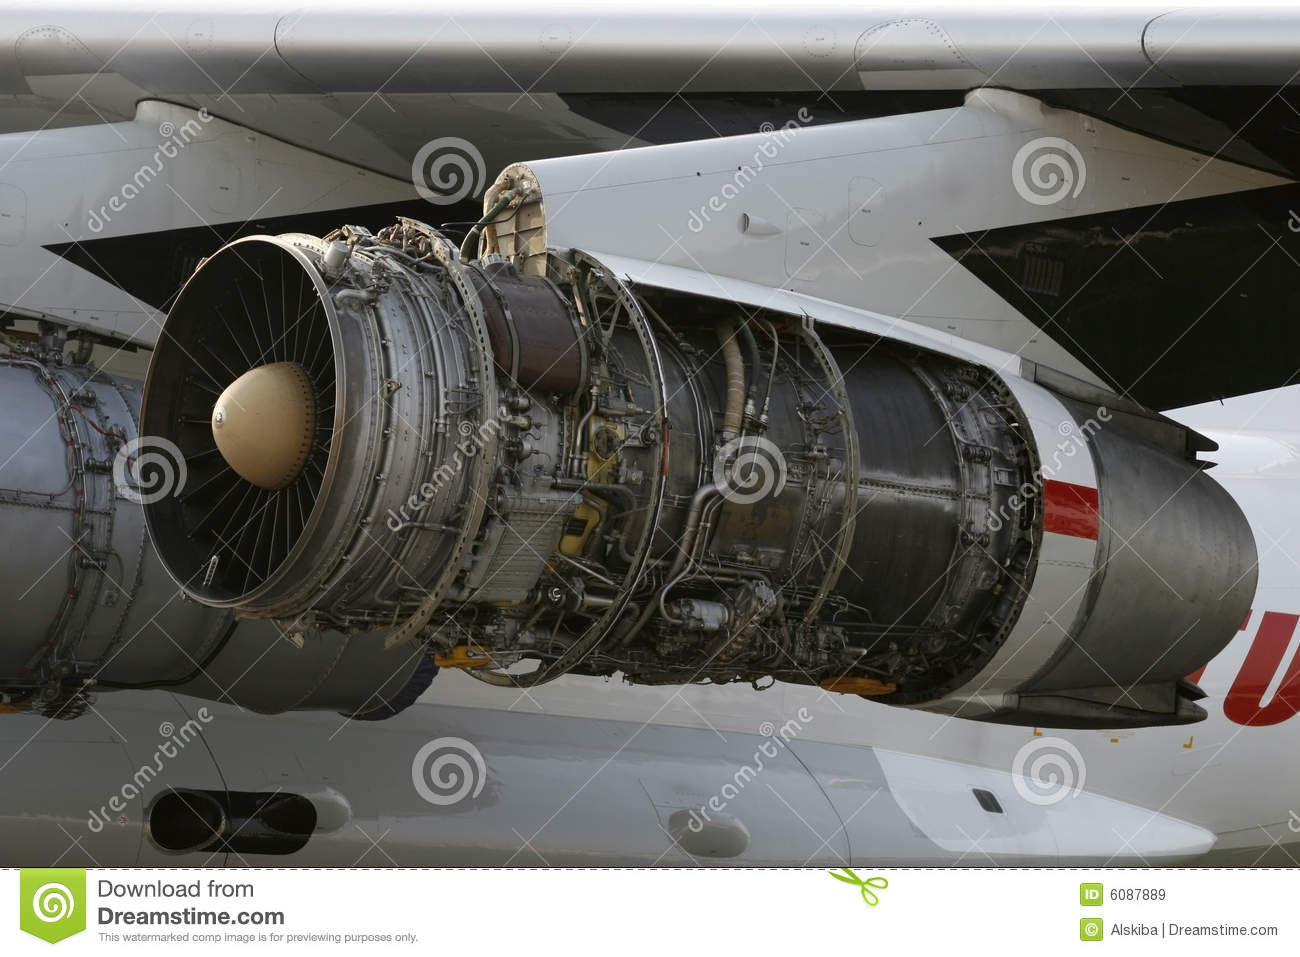 Opened Aircraft Engine D-30KP-2 Stock Image - Image: 6087889